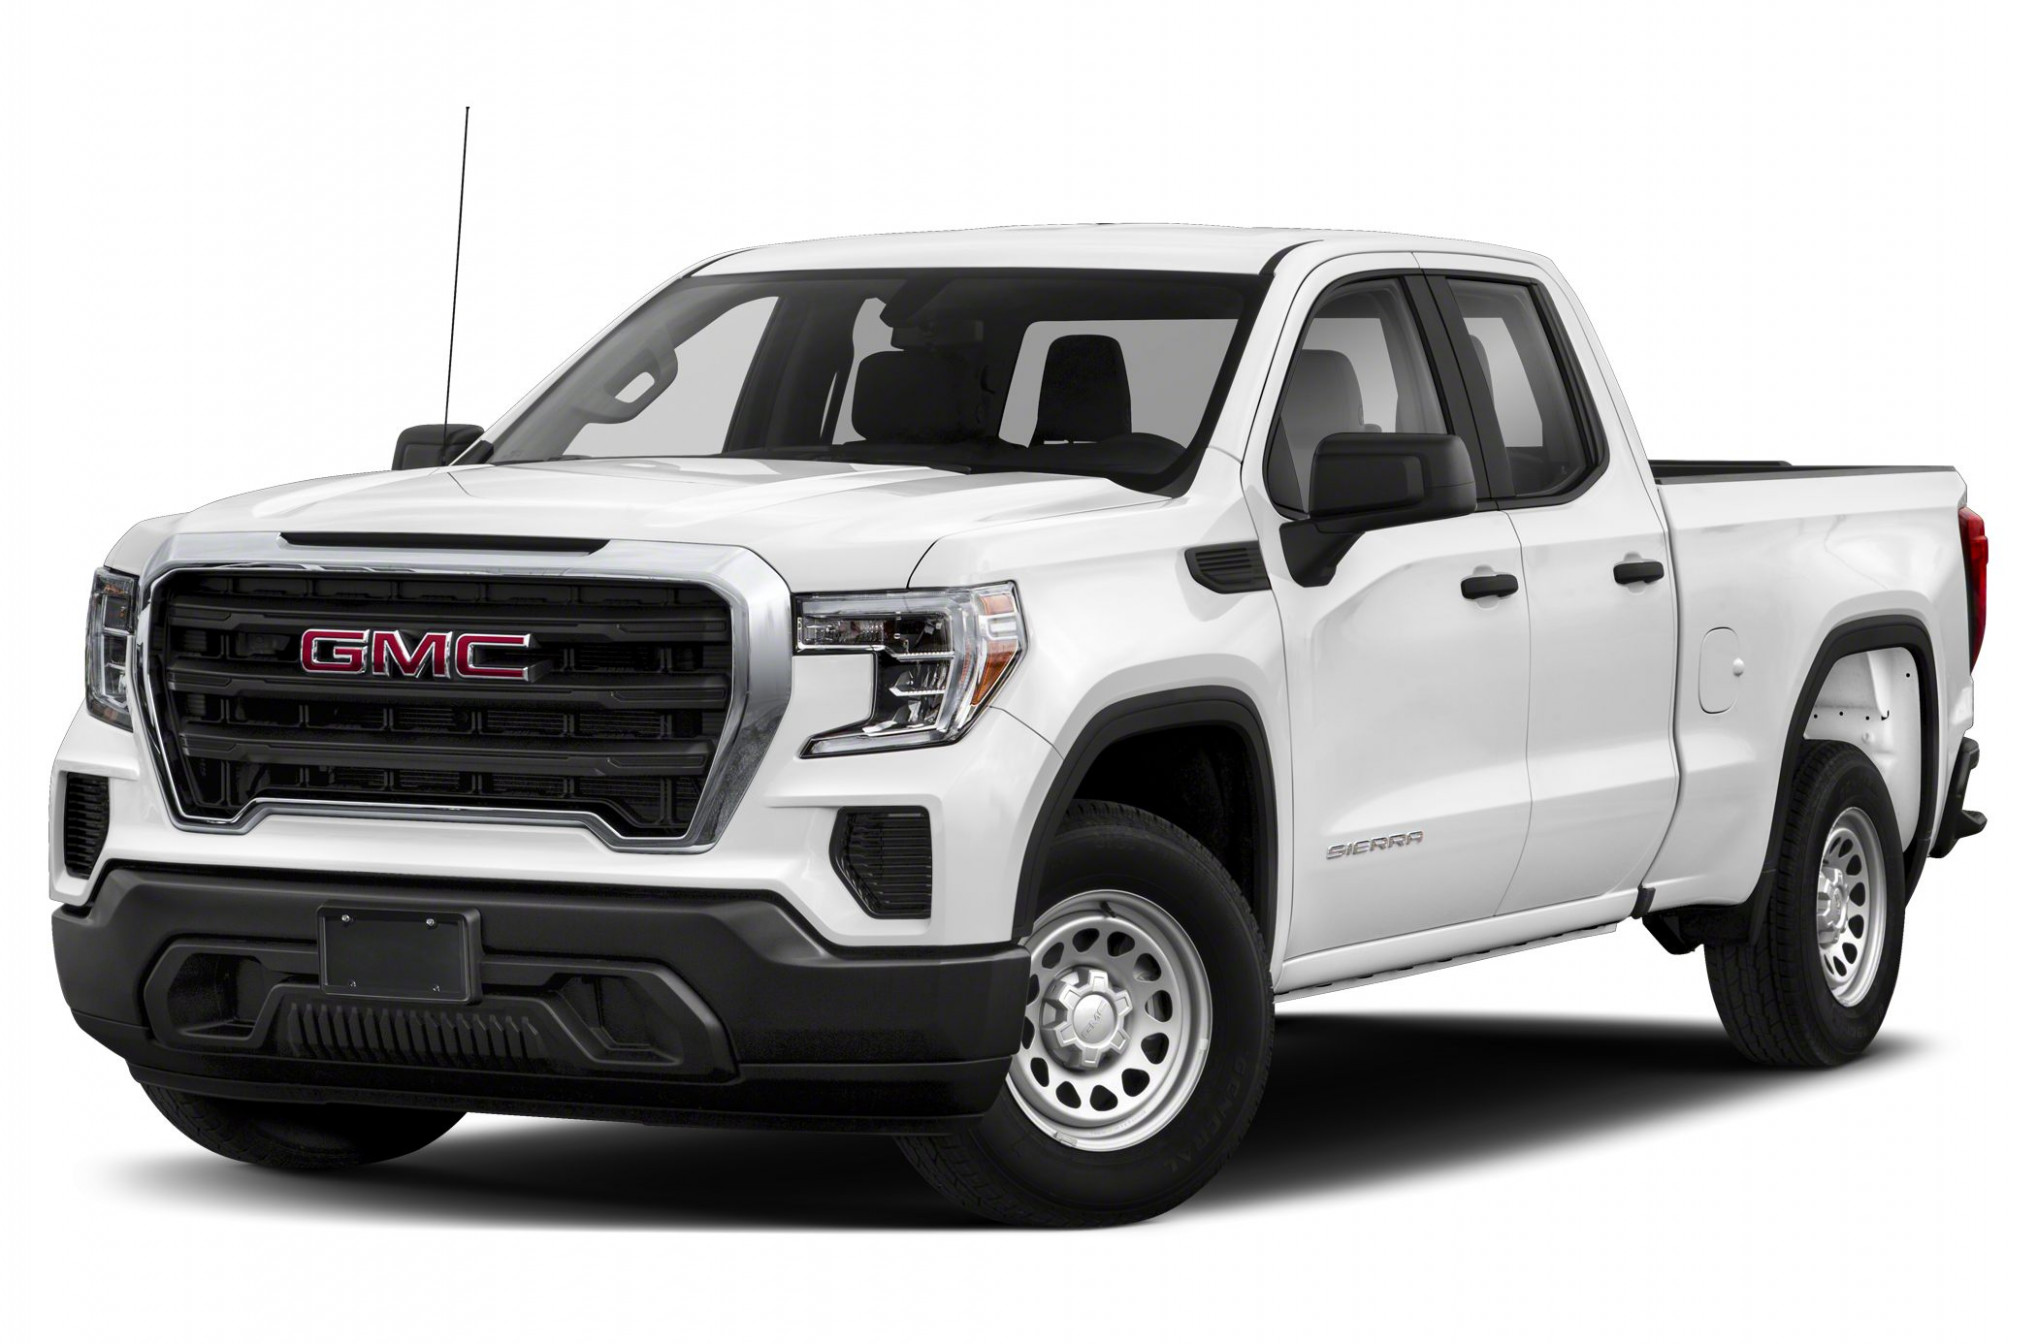 11 GMC Sierra 11 SLE 11x11 Double Cab 11.11 ft. box 1117.11 in. WB Pricing  and Options